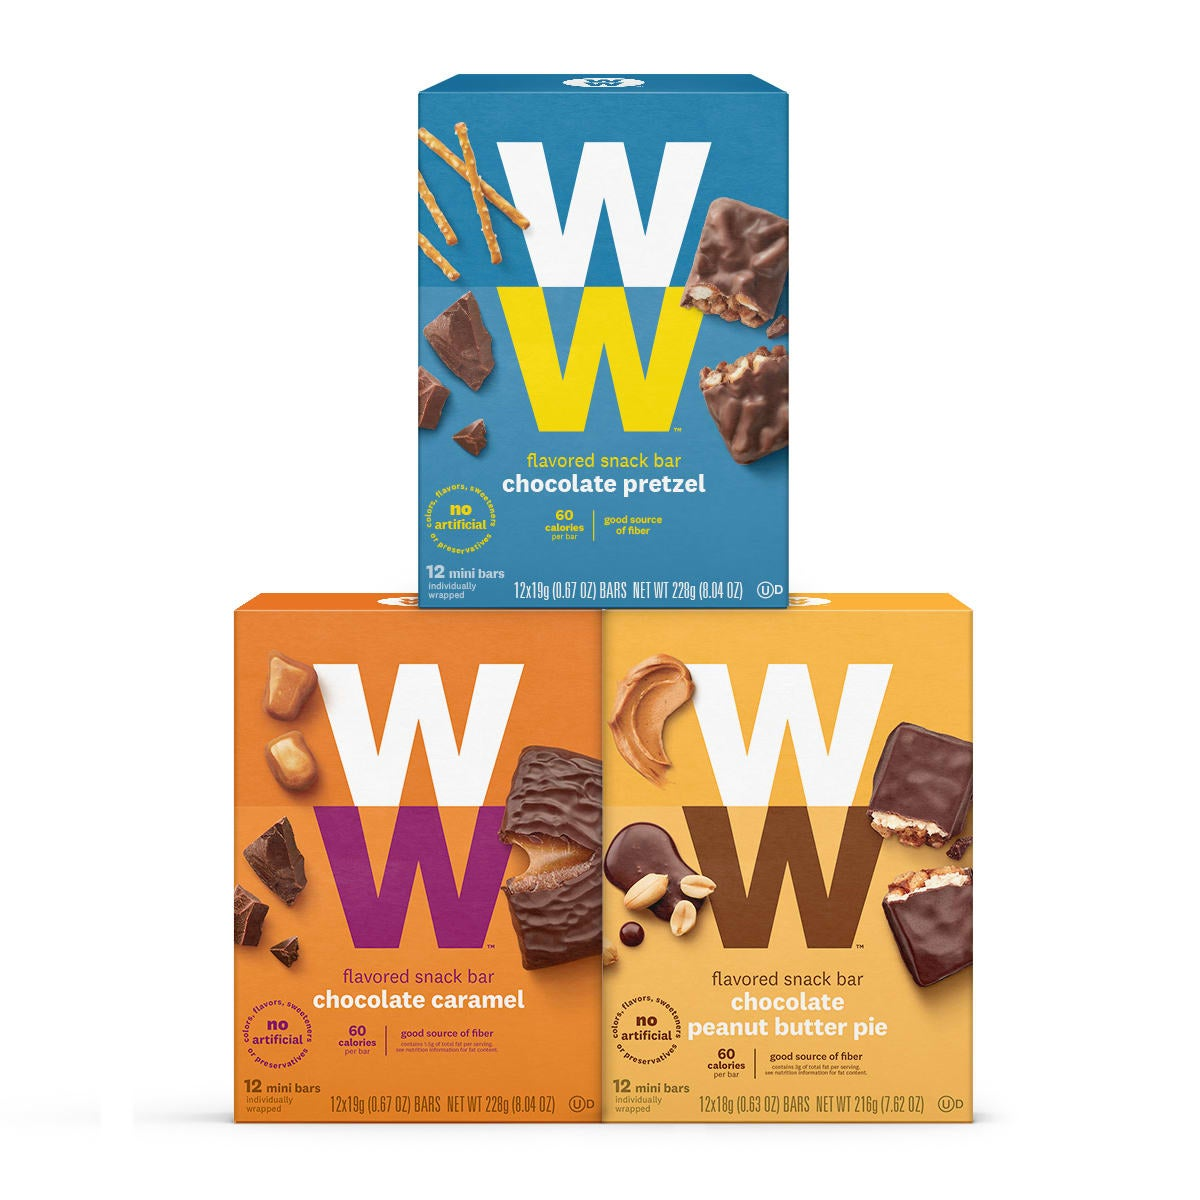 Chocolate Snack Bar Variety Pack, front of boxes, 3 box pack, 1 chocolate pretzel, 1 chocolate caramel, 1 peanut butter pie